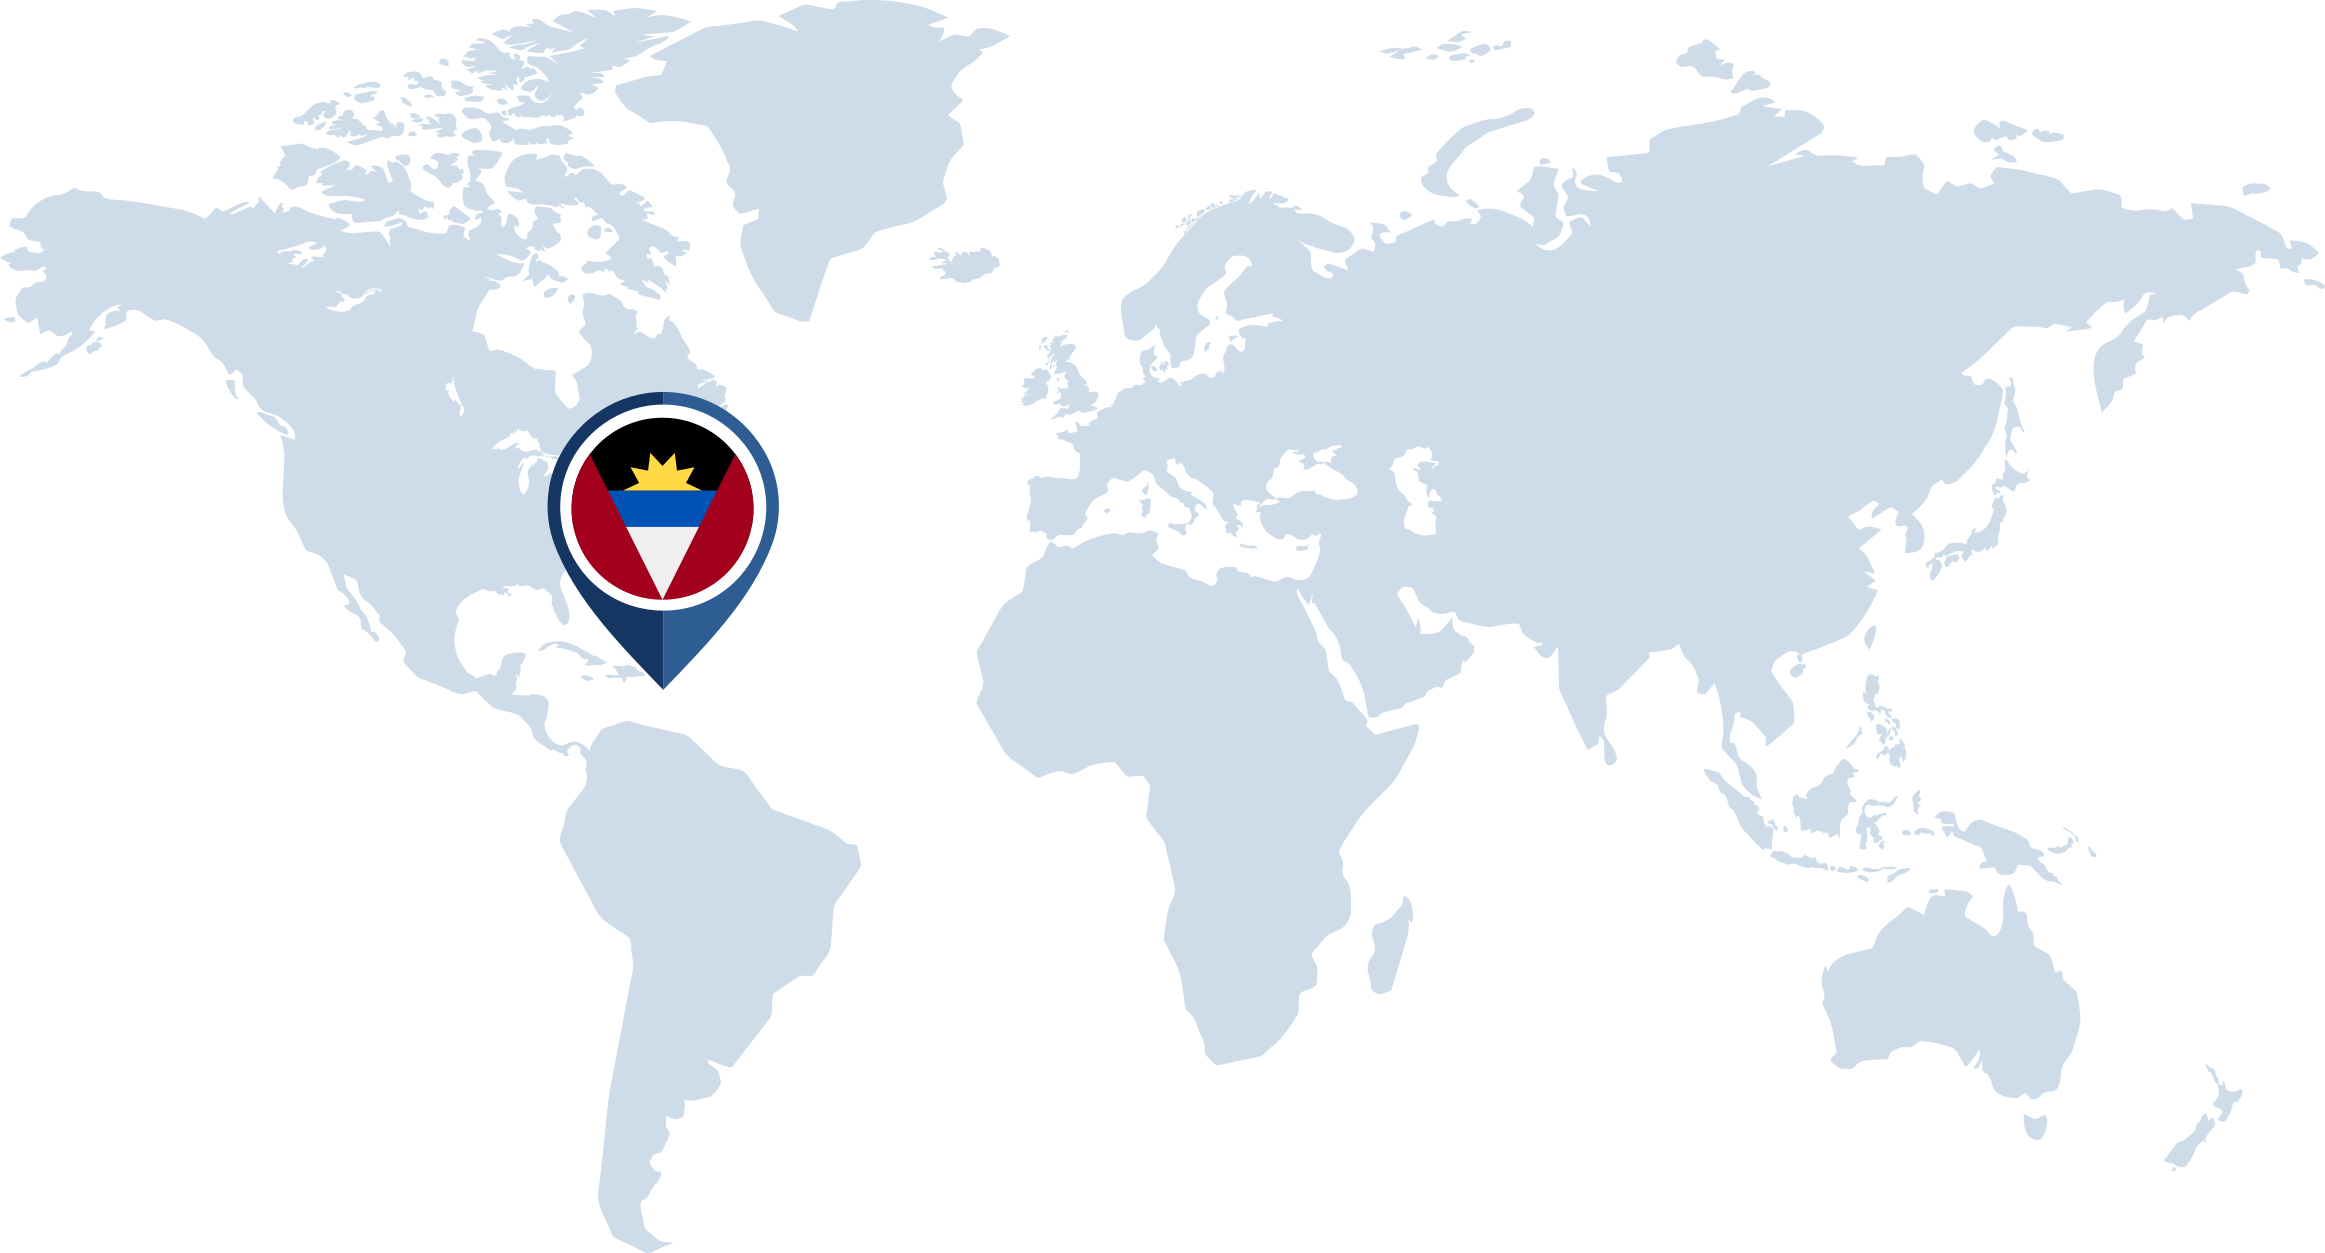 https://bluemina.com/wp-content/uploads/2020/02/Antigua-and-Barbuda-Map.png